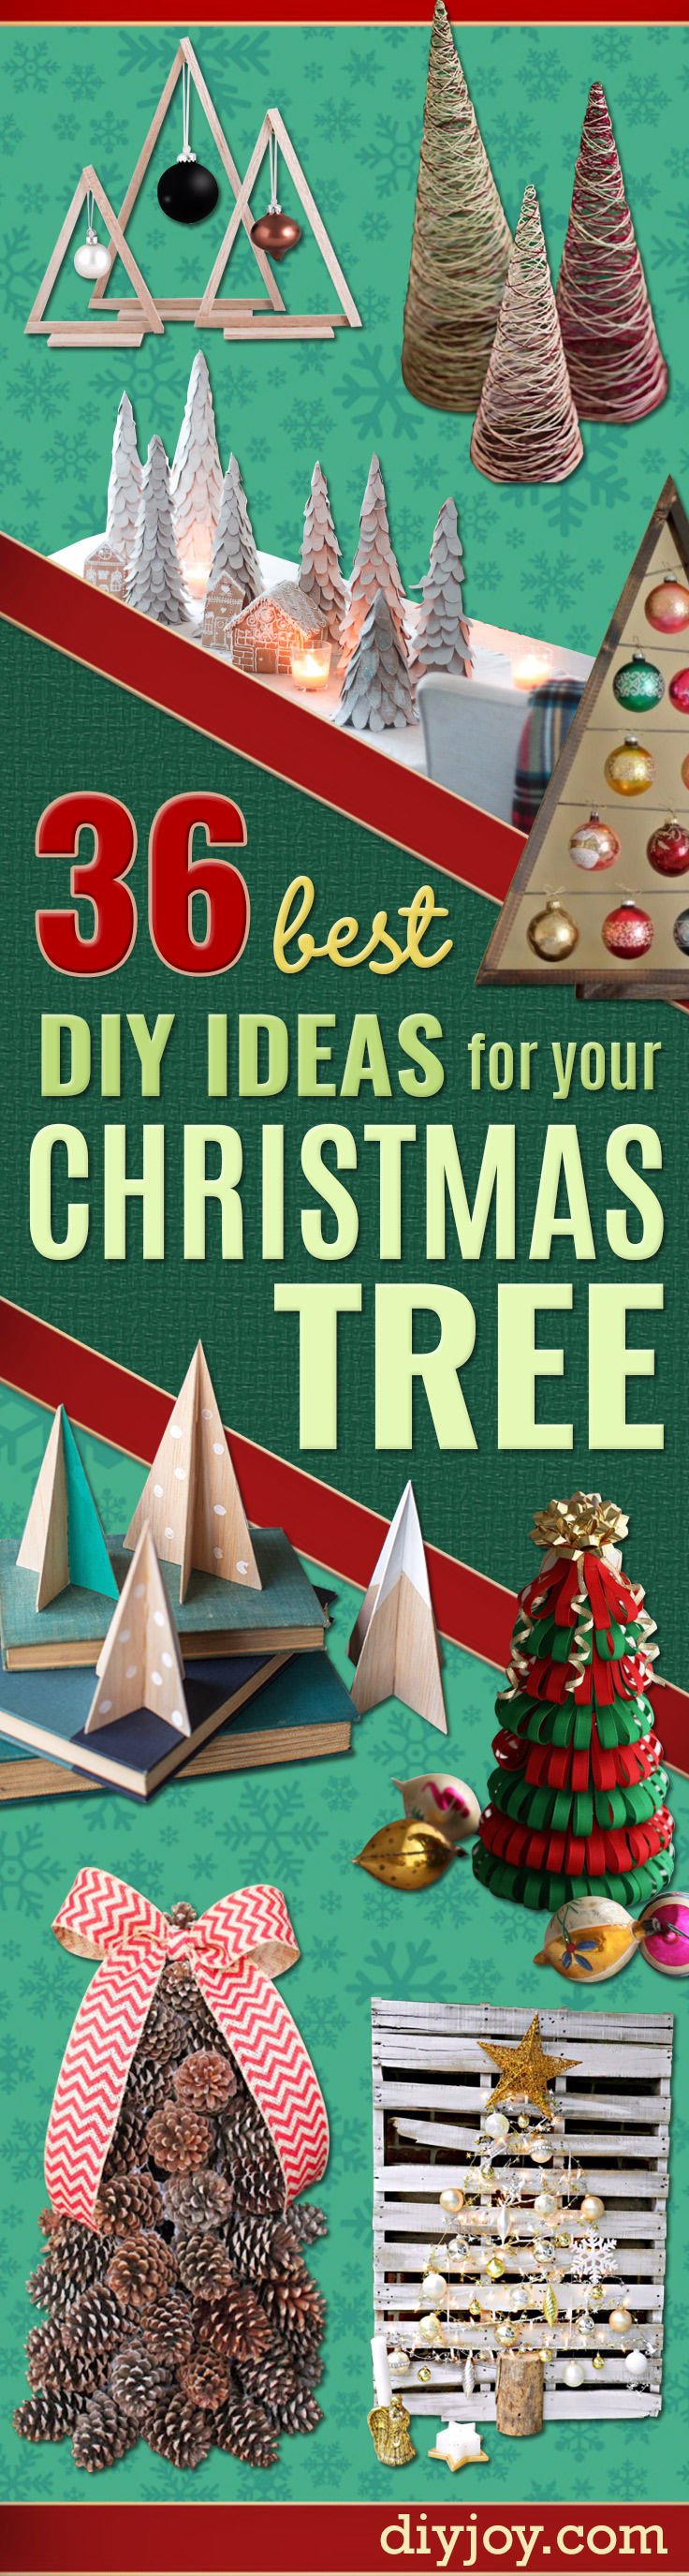 Cheap Christmas Decor Ideas - Best DIY Ideas for Your Christmas Tree - Cool Handmade Ornaments, DIY Decorating Ideas and Ornament Tutorials - Creative Ways To Decorate Trees on A Budget - Cheap Christmas Home Decor - Xmas Crafts #christmas #diy #crafts